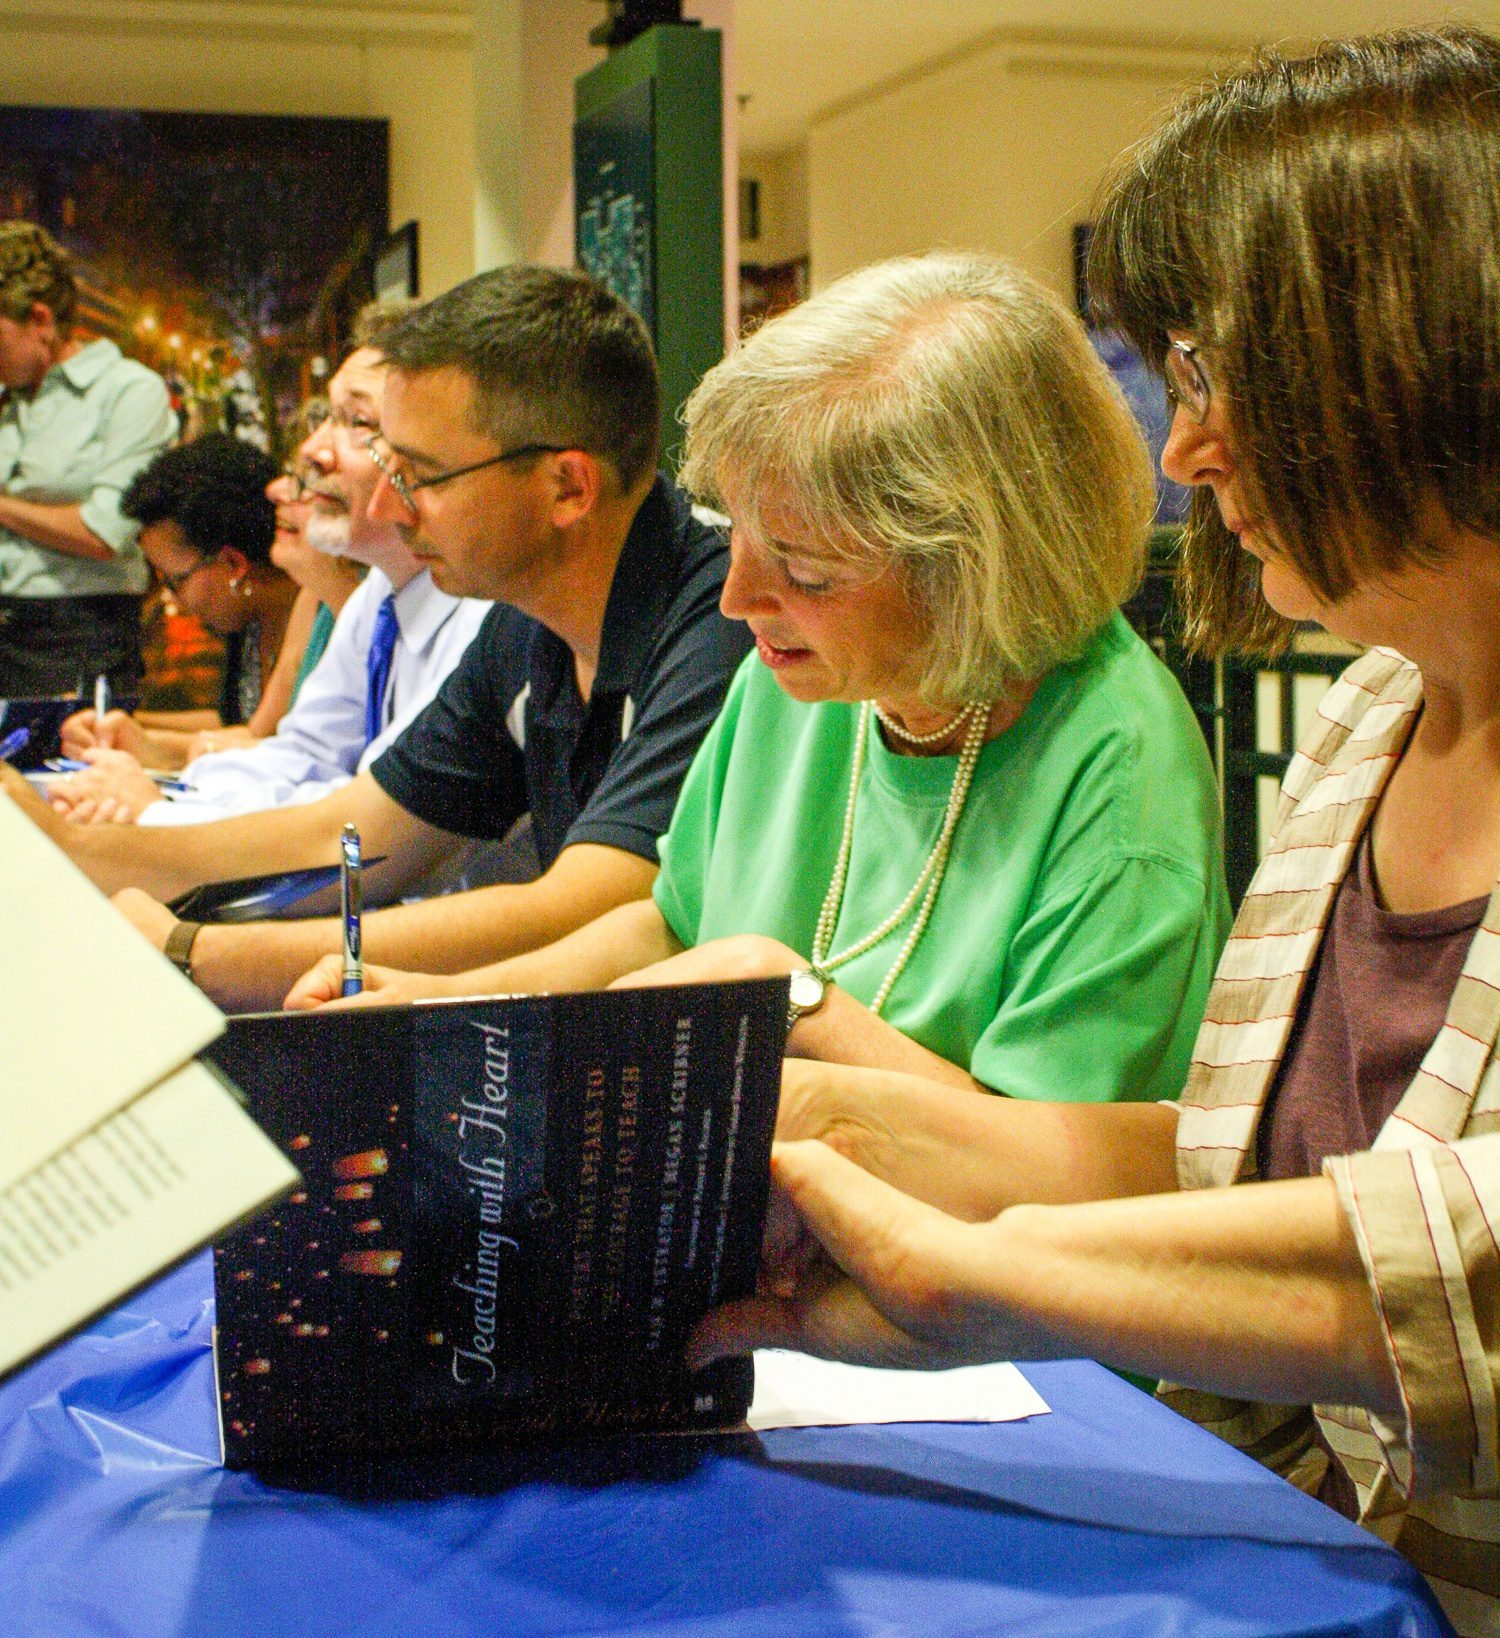 """""""Teaching with Heart"""" book reading, autographing the books: Megan Scribner, Christine Intagliata, Liam Corley, and Dennis Huffman in Maryland."""